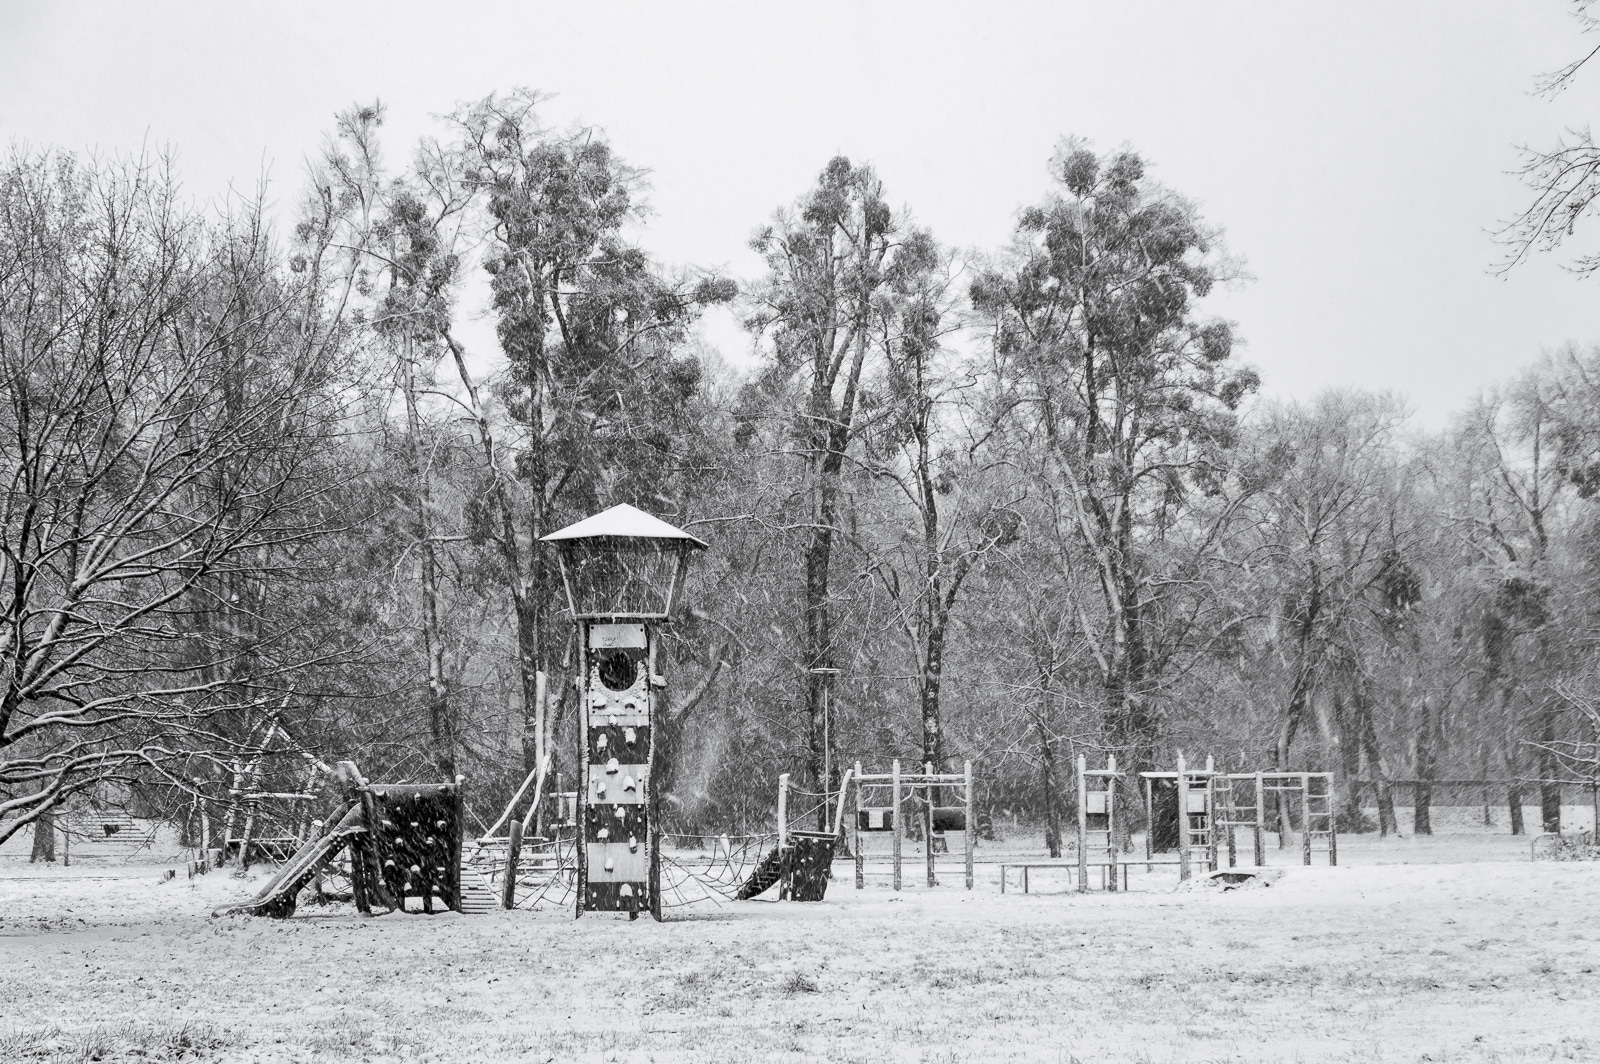 A snow covered playground